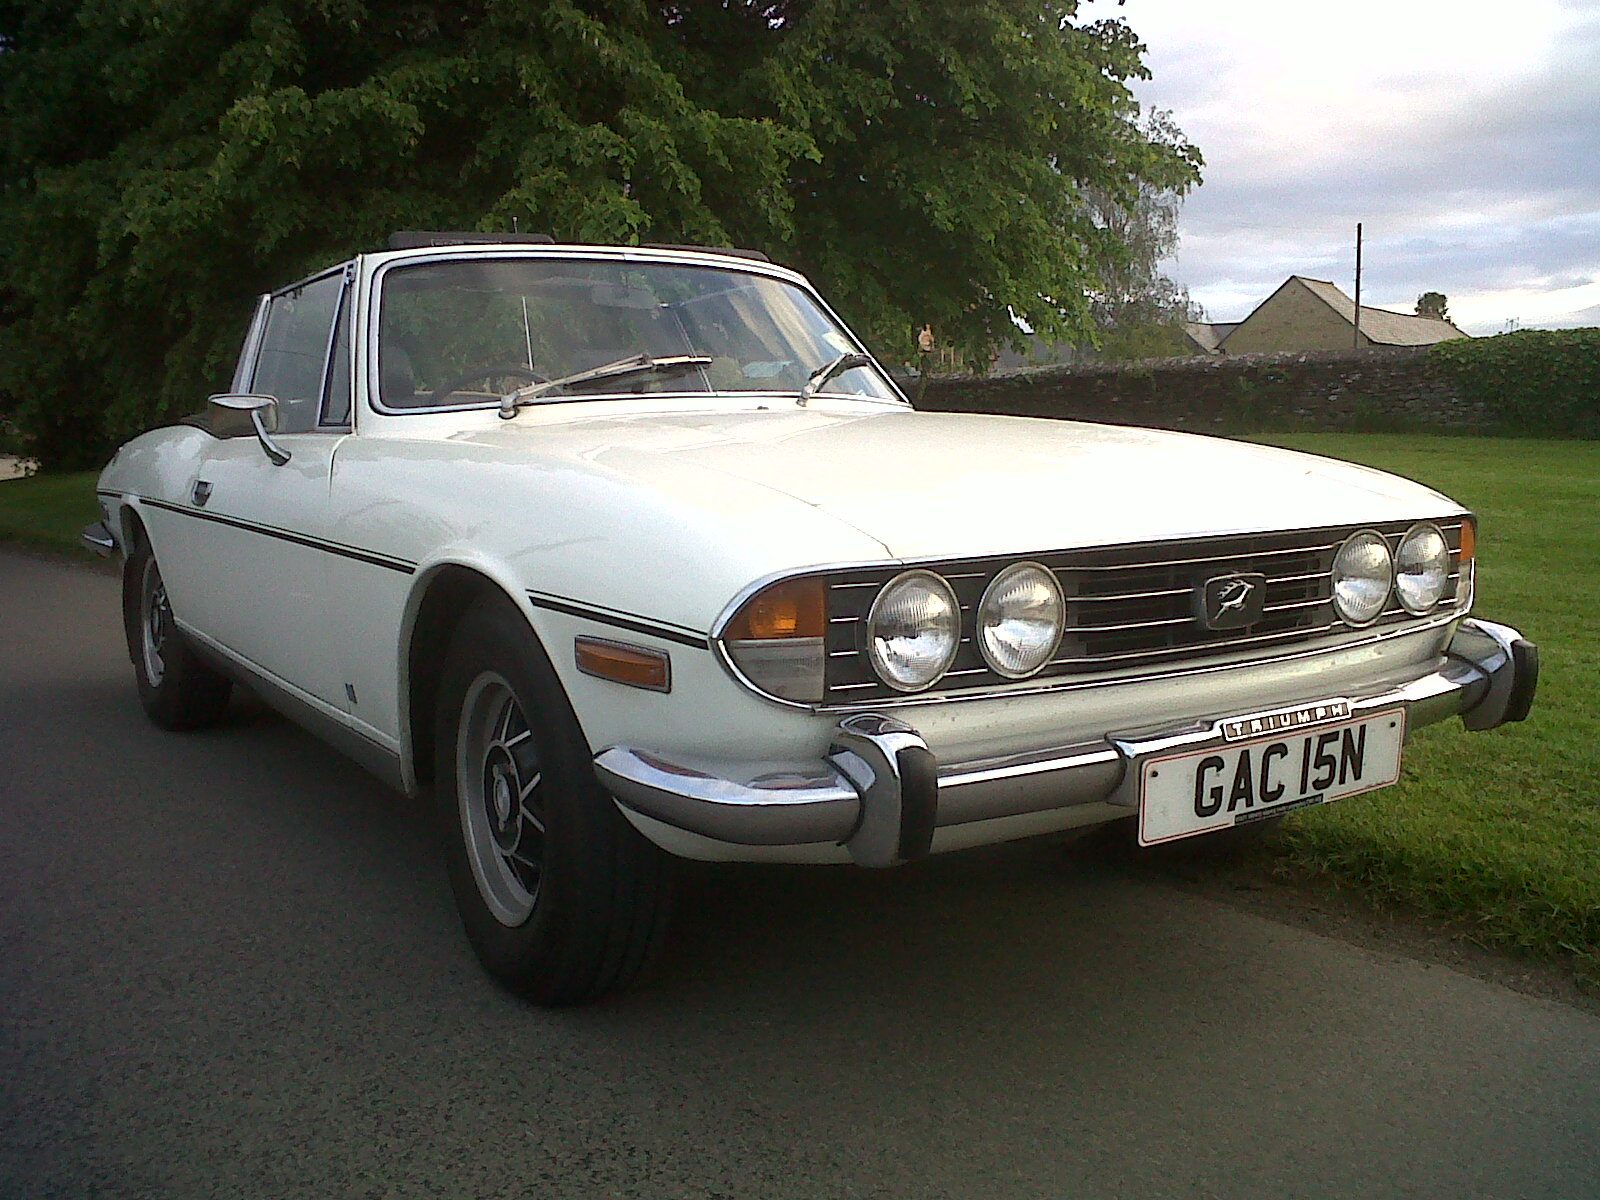 Stag had Triumph 2000 underpinnings